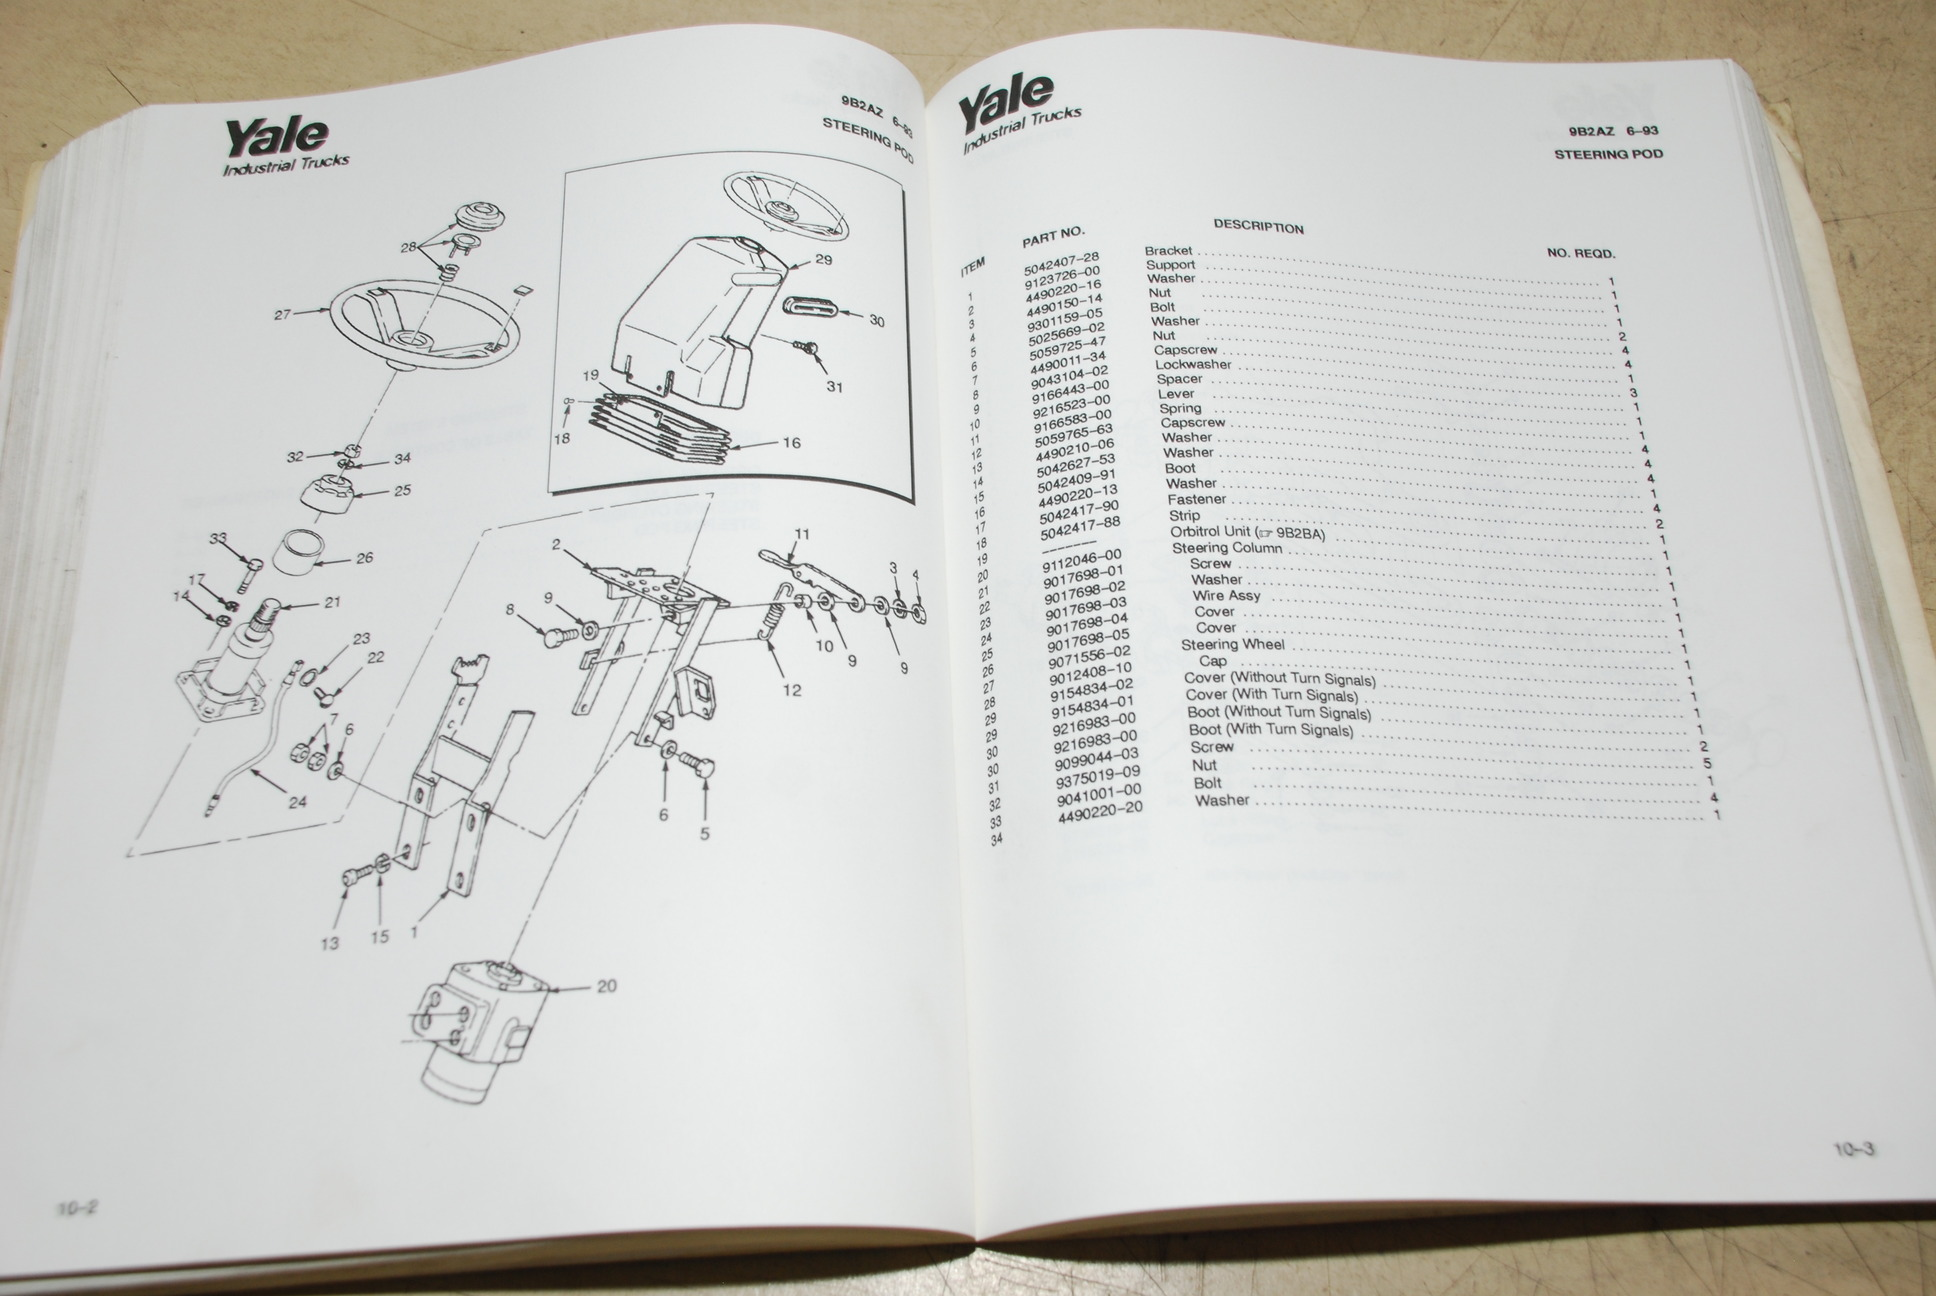 Yale Forklift Service Parts Manual For Gp Glp Gdp 040